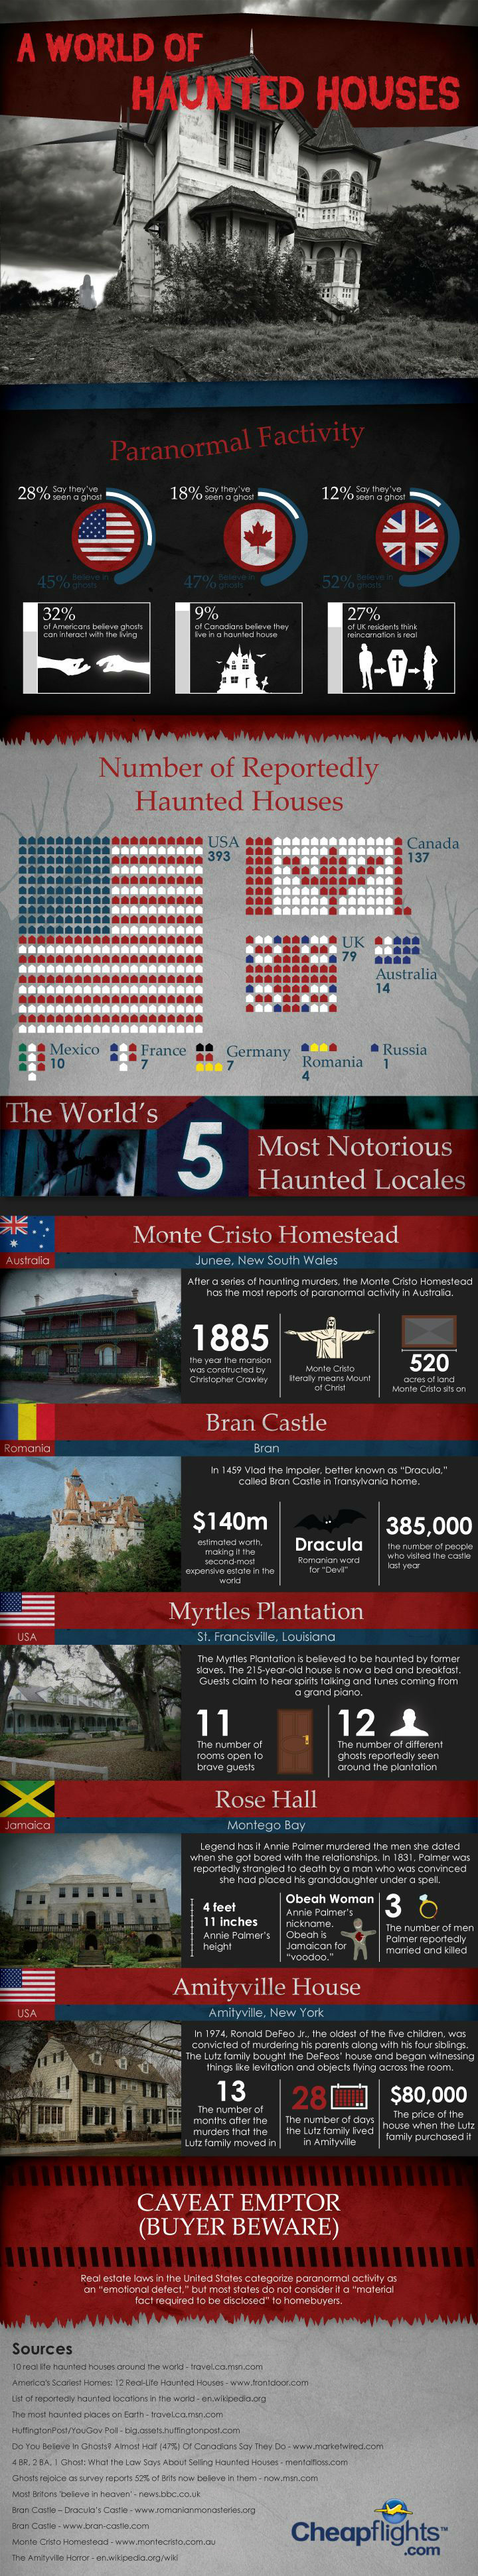 World of Haunted Houses [Infographic]